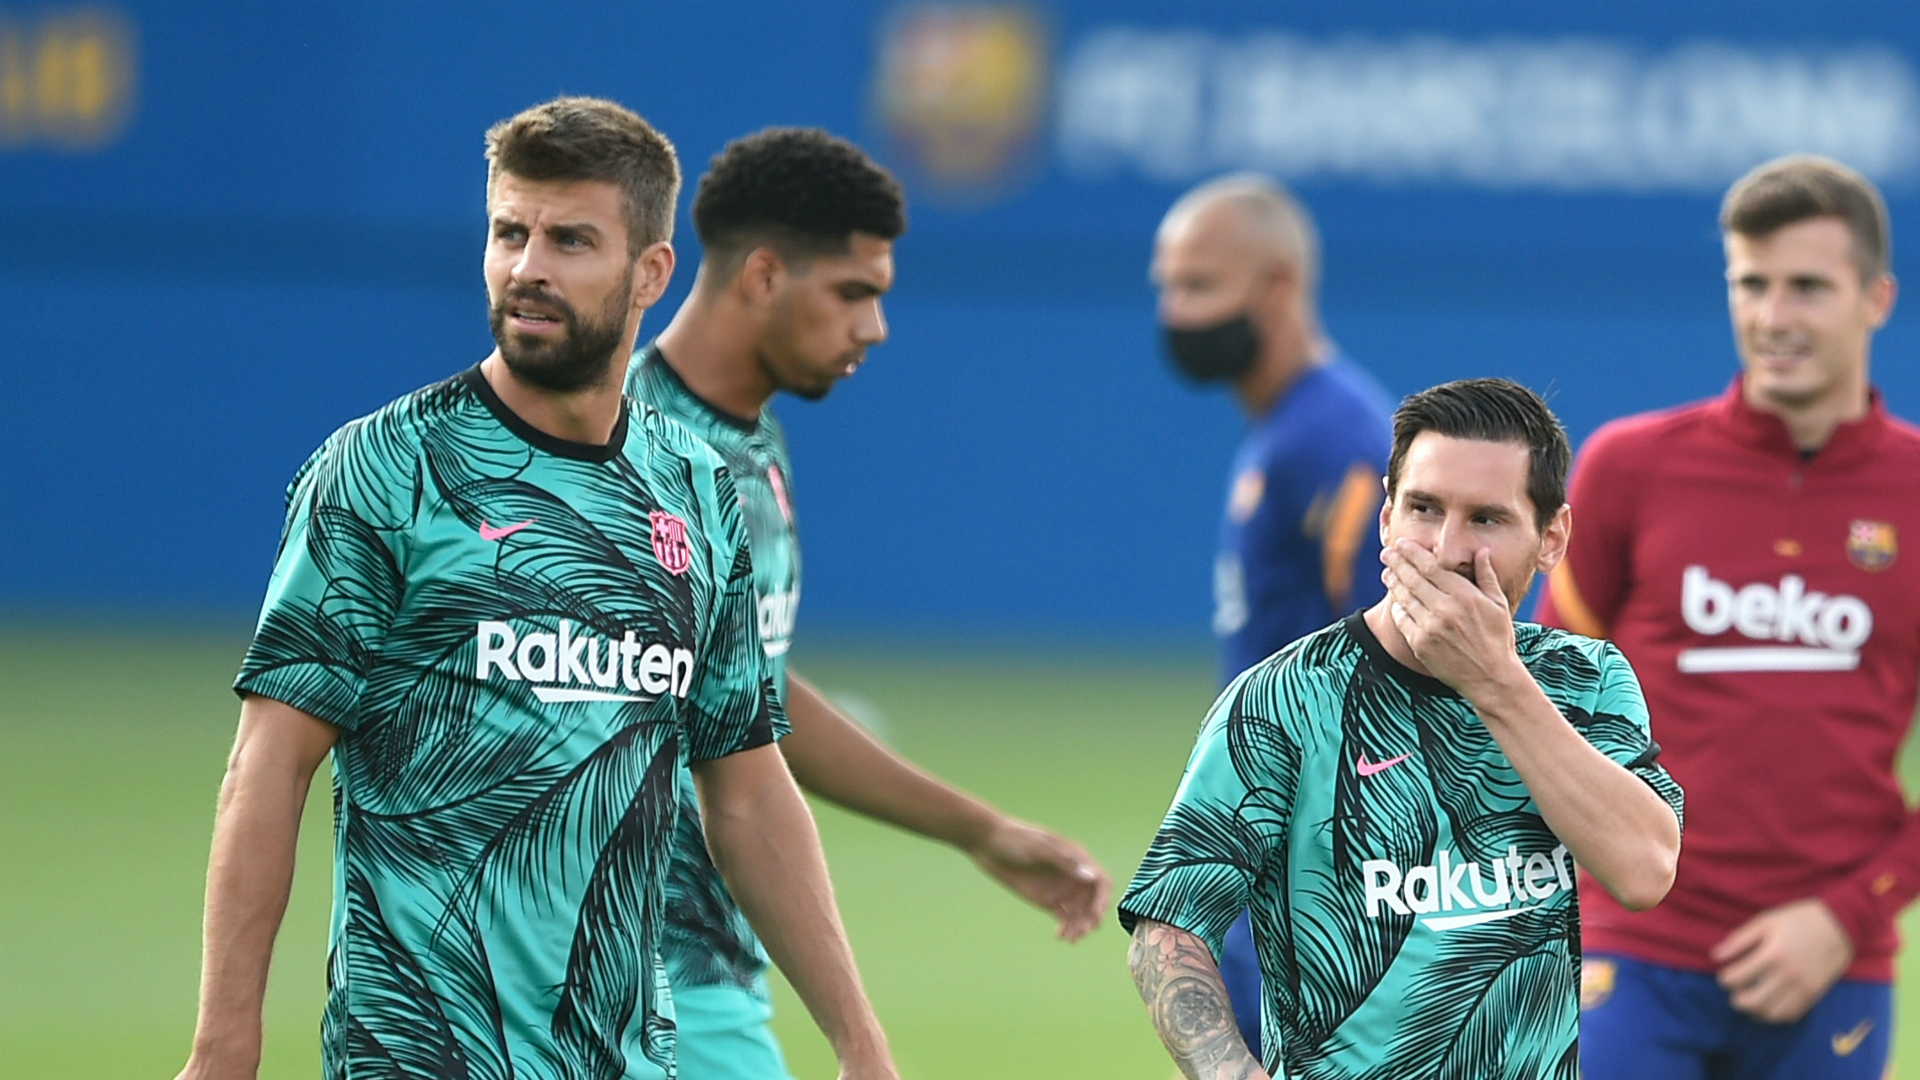 Messi earned the right to leave Barcelona – Pique hits out at Bartomeu for poor handling of transfer saga